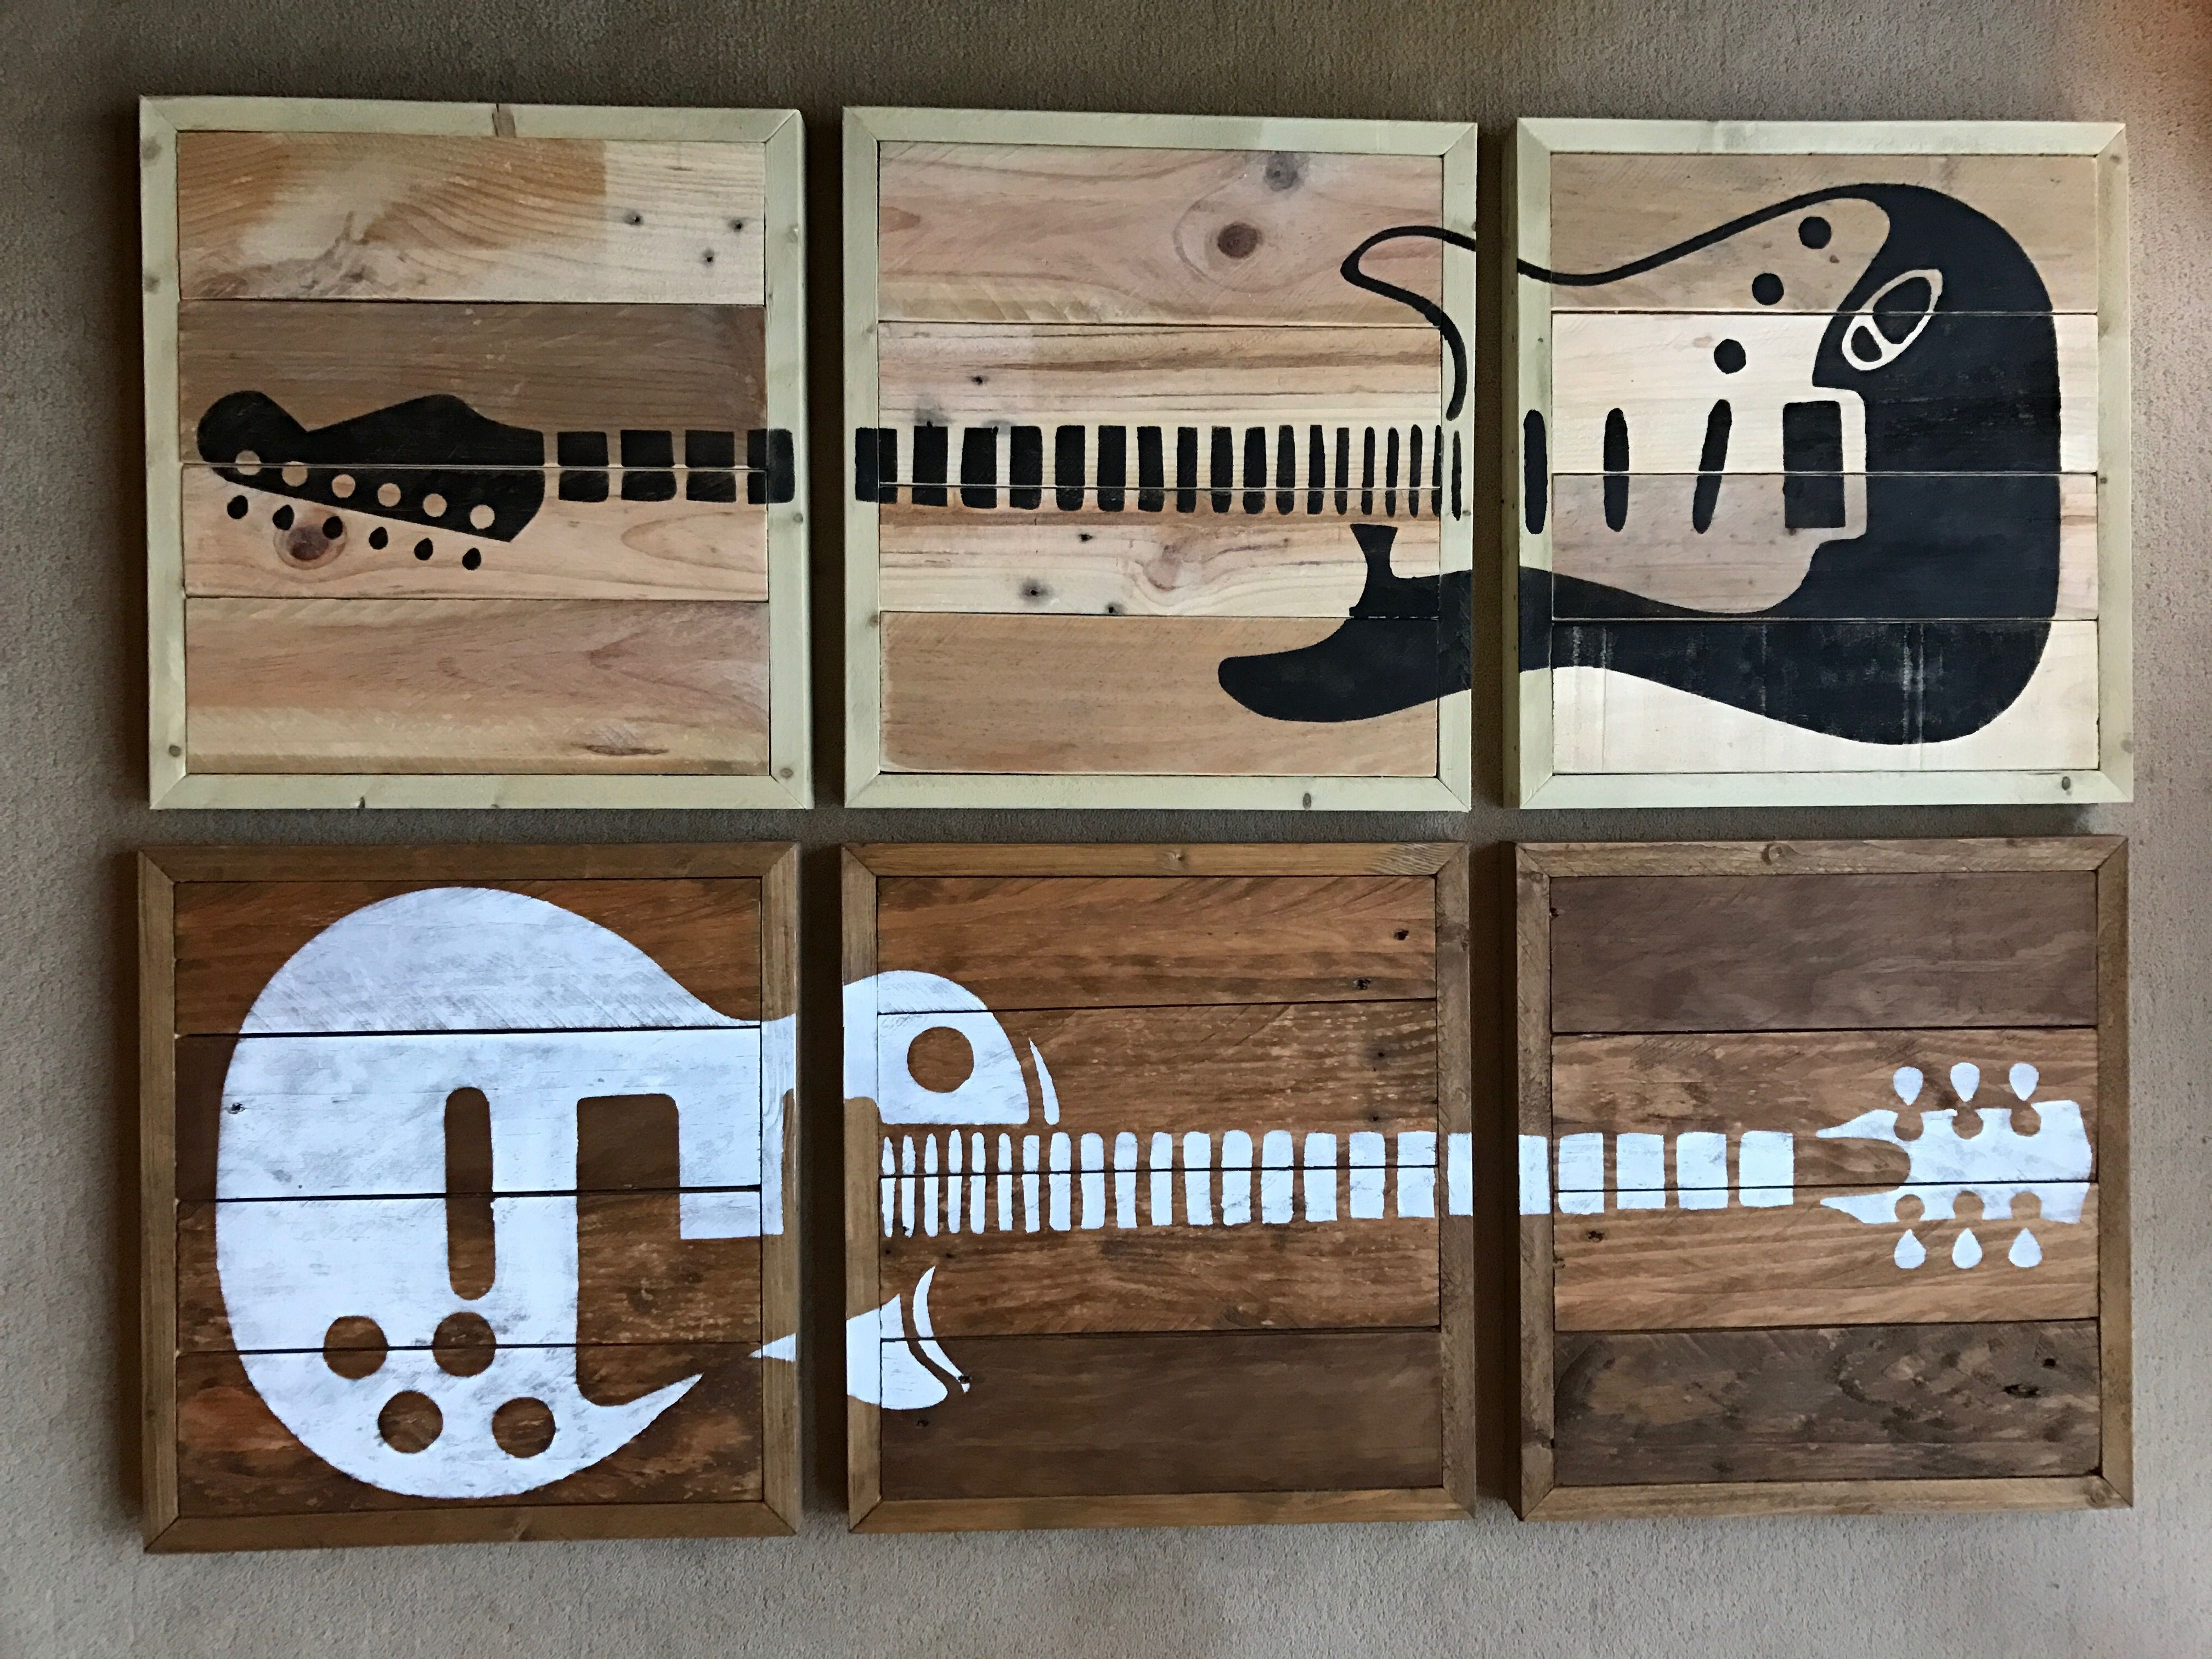 Charming 3 Piece Guitar Wall Art Hand Made From Rescued Wood. Full Size Outlines. Any